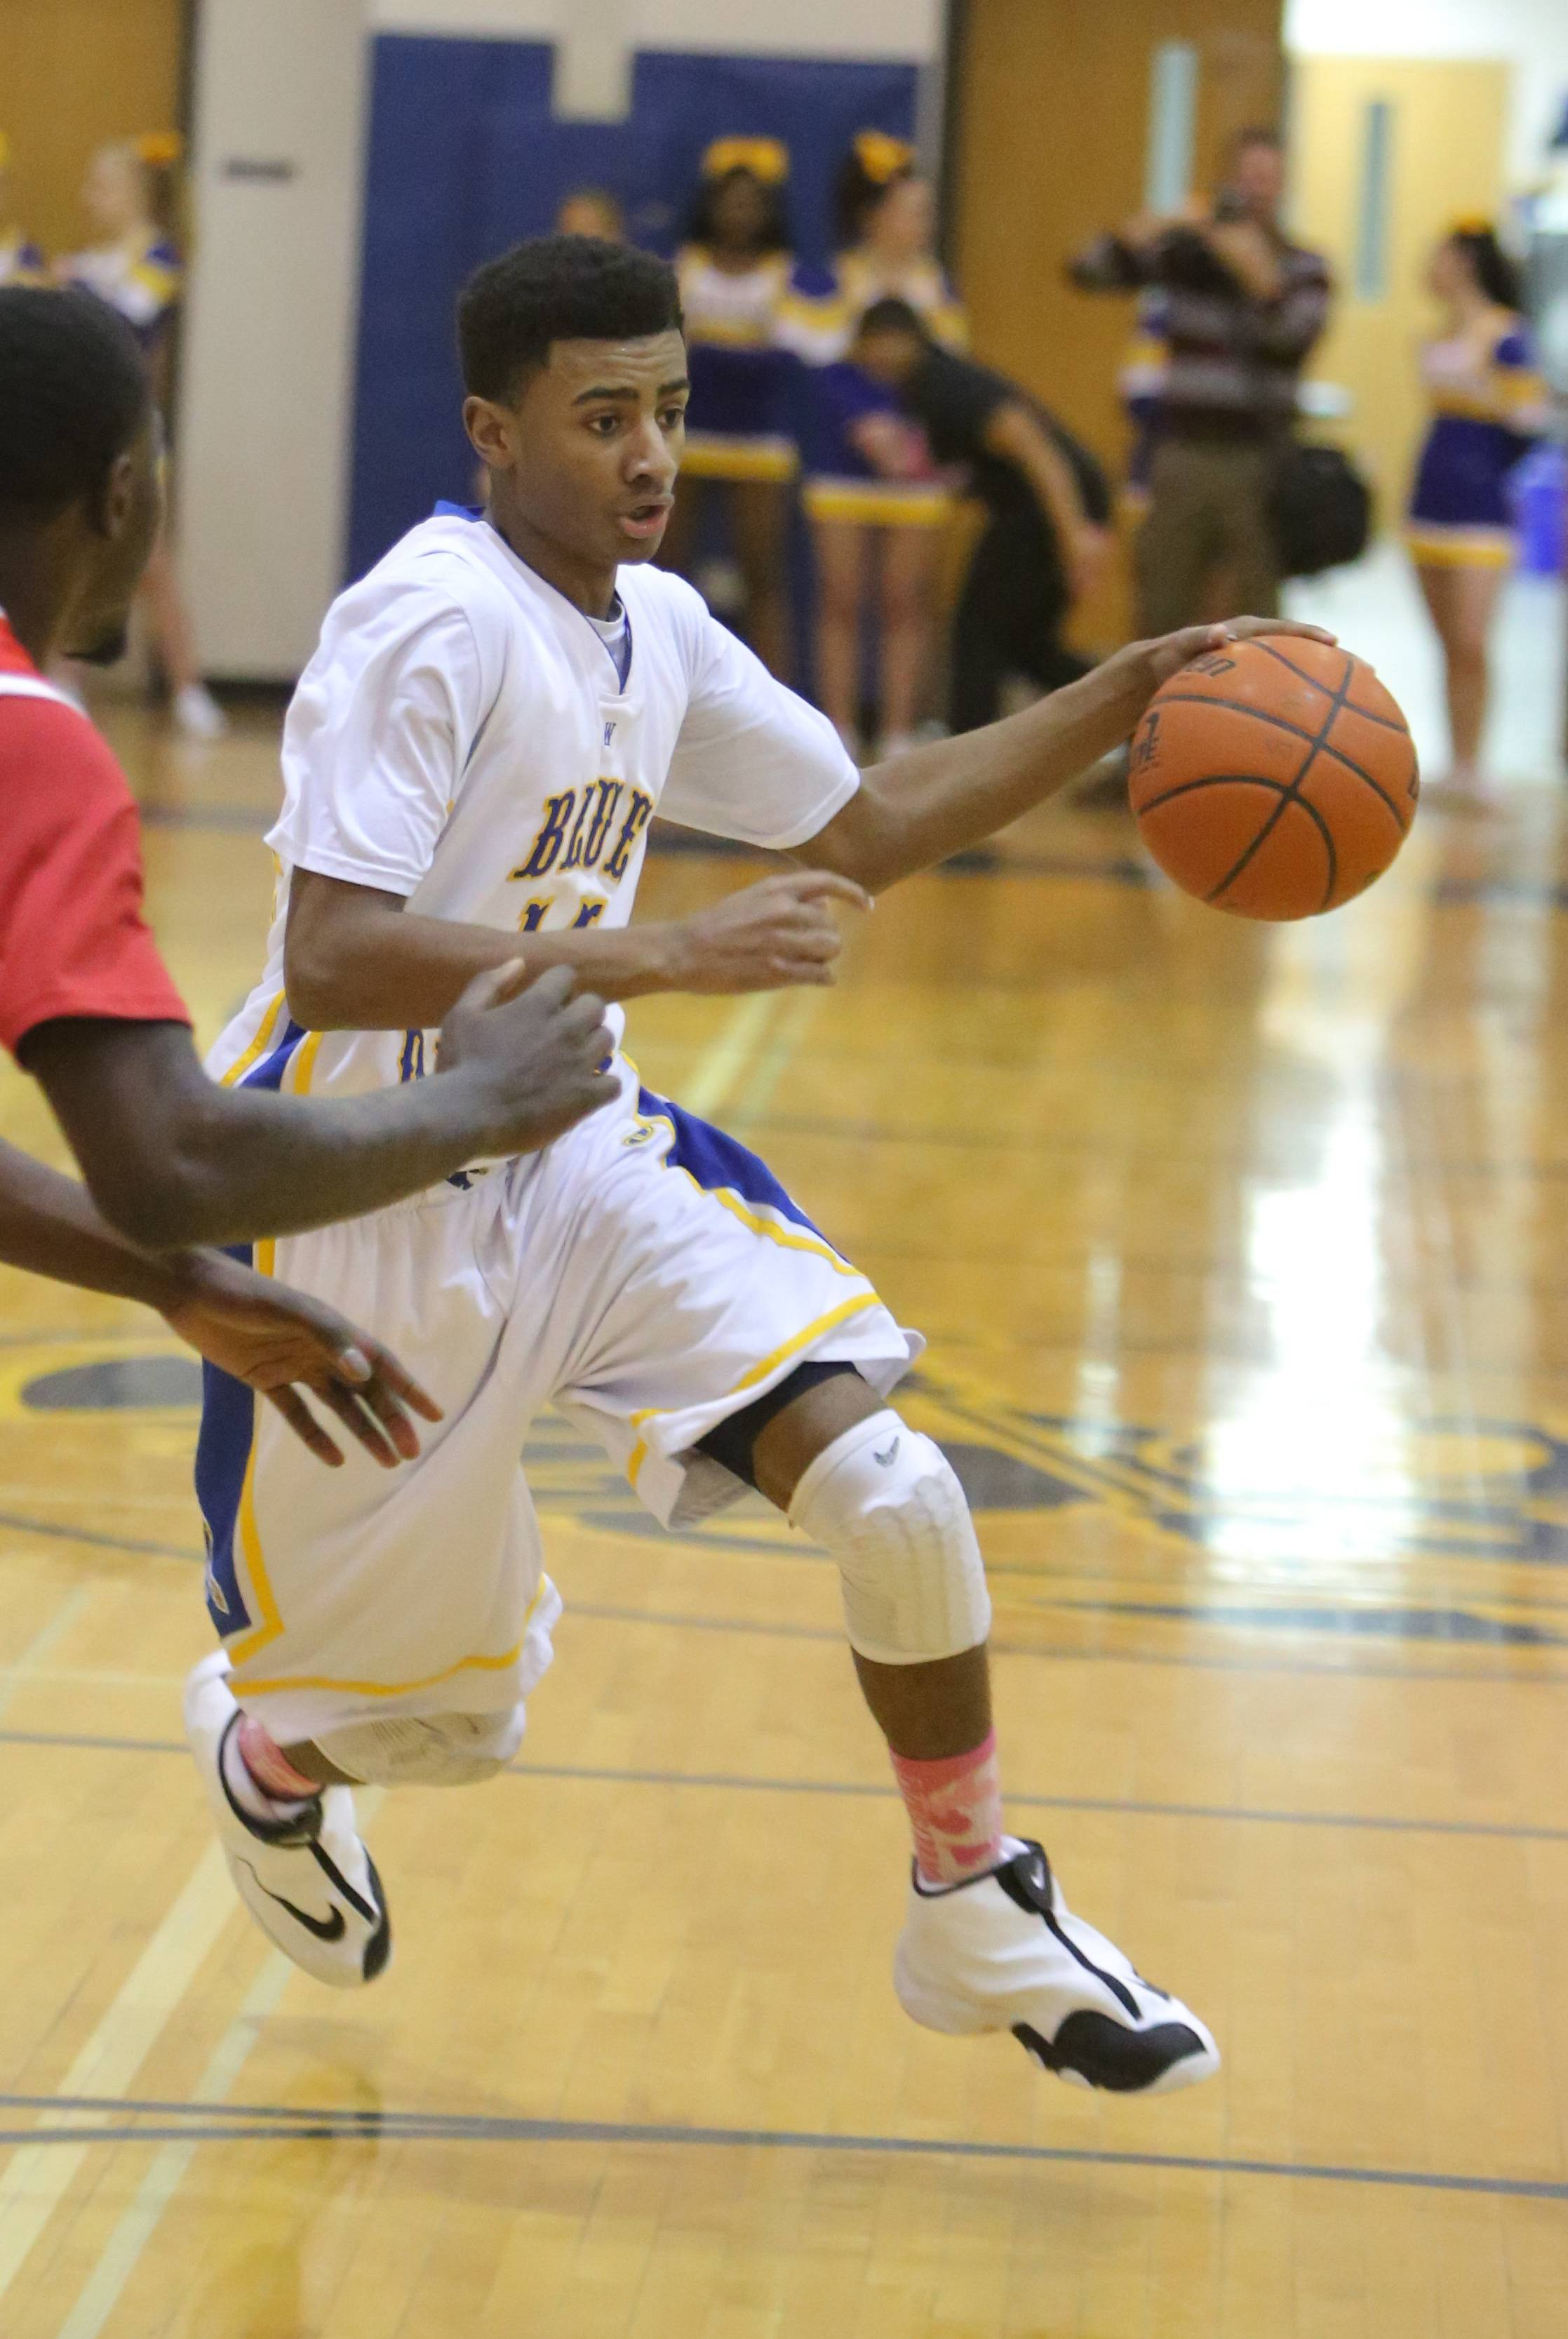 Images from the North Chicago at Warren boys basketball game on Tuesday, February 11 in Gurnee.